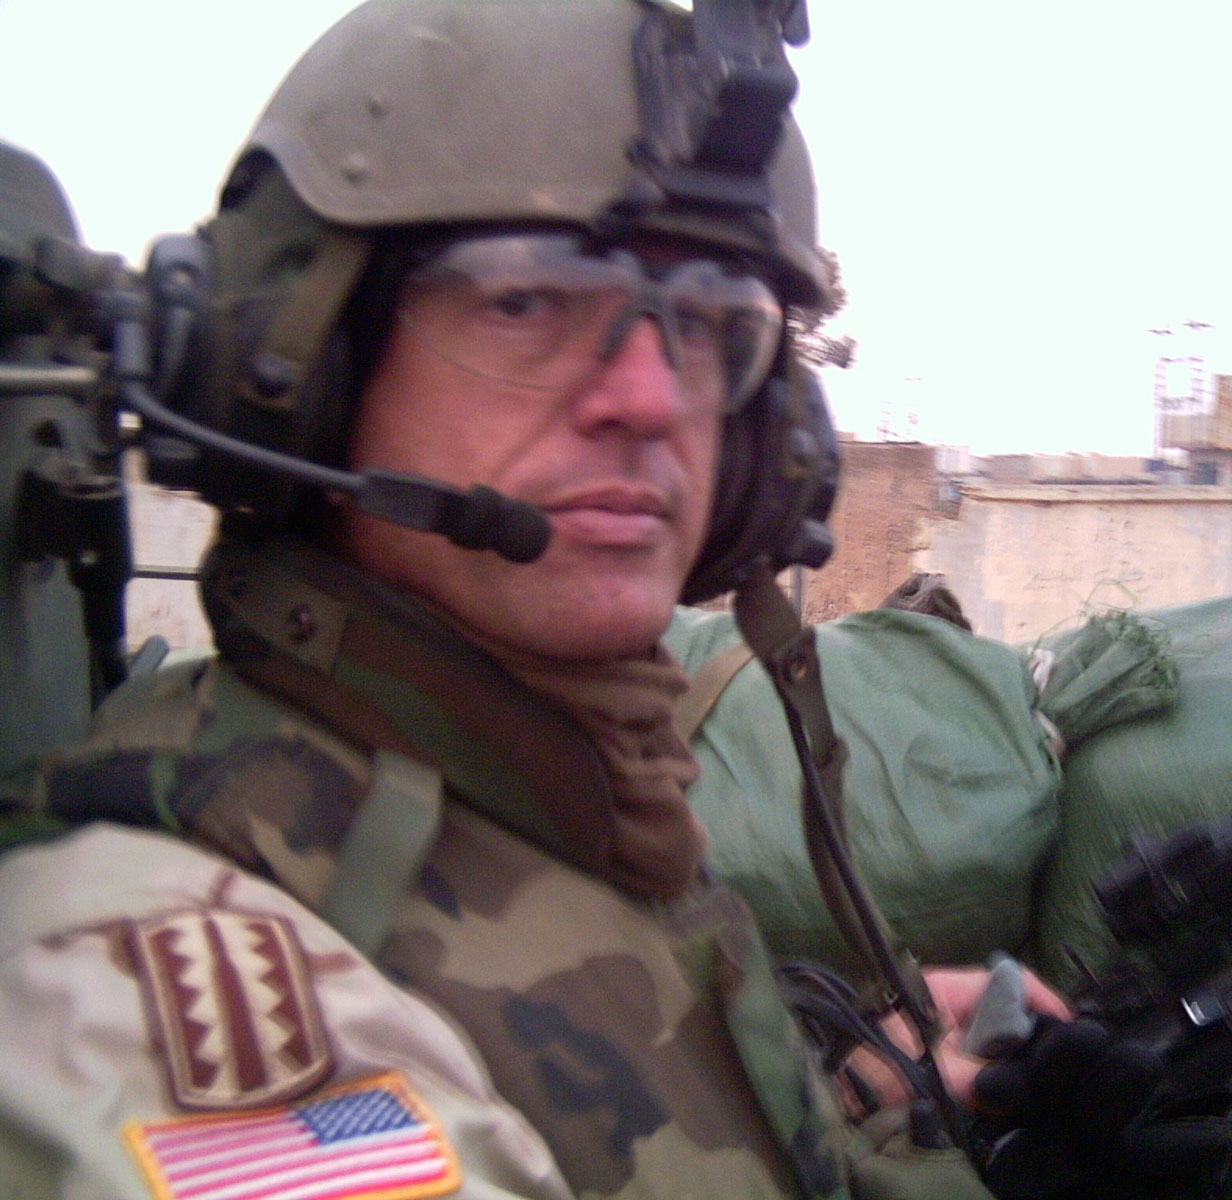 """U.S. Army First Sergeant Michael """"Hammer"""" Bordelon, 37, of Morgan City, Louisiana, assigned to the 1st Battalion, 24th Infantry Regiment, 1st Brigade, 25th Infantry Division (Stryker Brigade Combat Team), based out of Fort Lewis, Washington, died on May 10, 2005, from injuries sustained when a car bomb exploded near him in Mosul, Iraq on April 23, 2005.  He is survived by his wife Mila; children Mike Jr., Jacob, and Johanna; mother Dolores; and sister Doreen Scioneaux."""